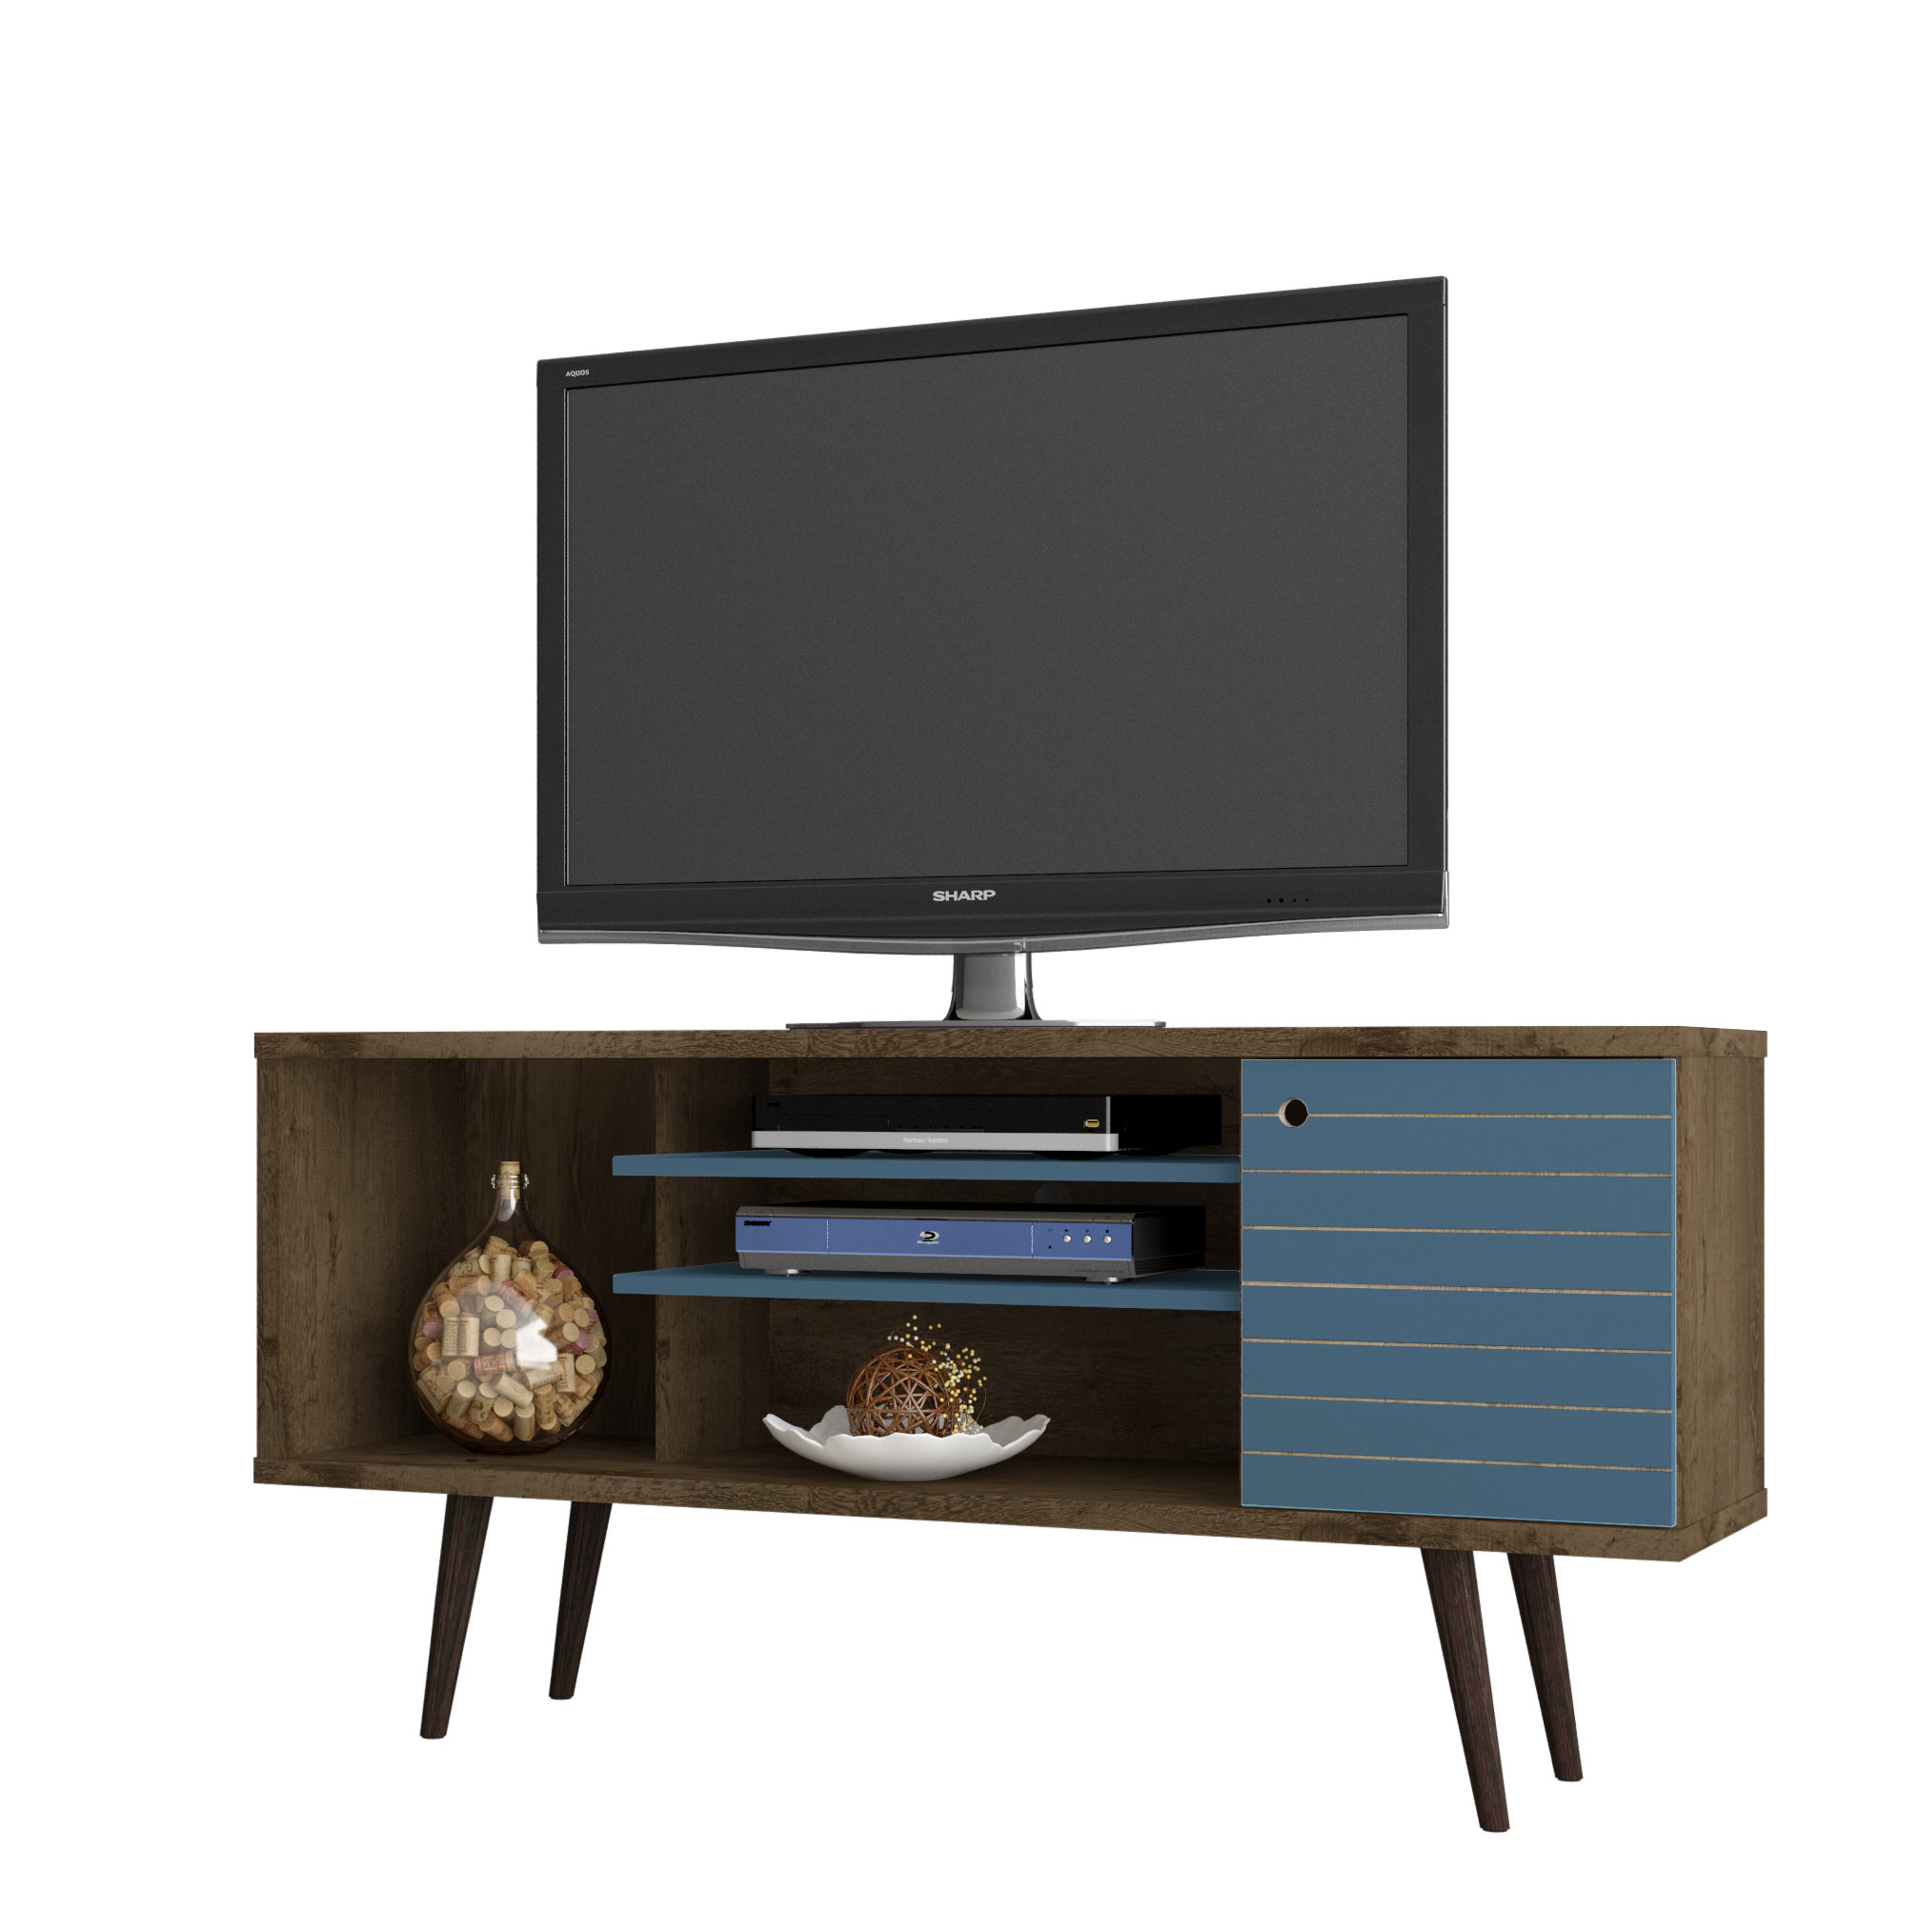 Jabari Tv Stand For Tvs Up To 50'' & Reviews | Joss & Main with regard to Century Blue 60 Inch Tv Stands (Image 9 of 30)